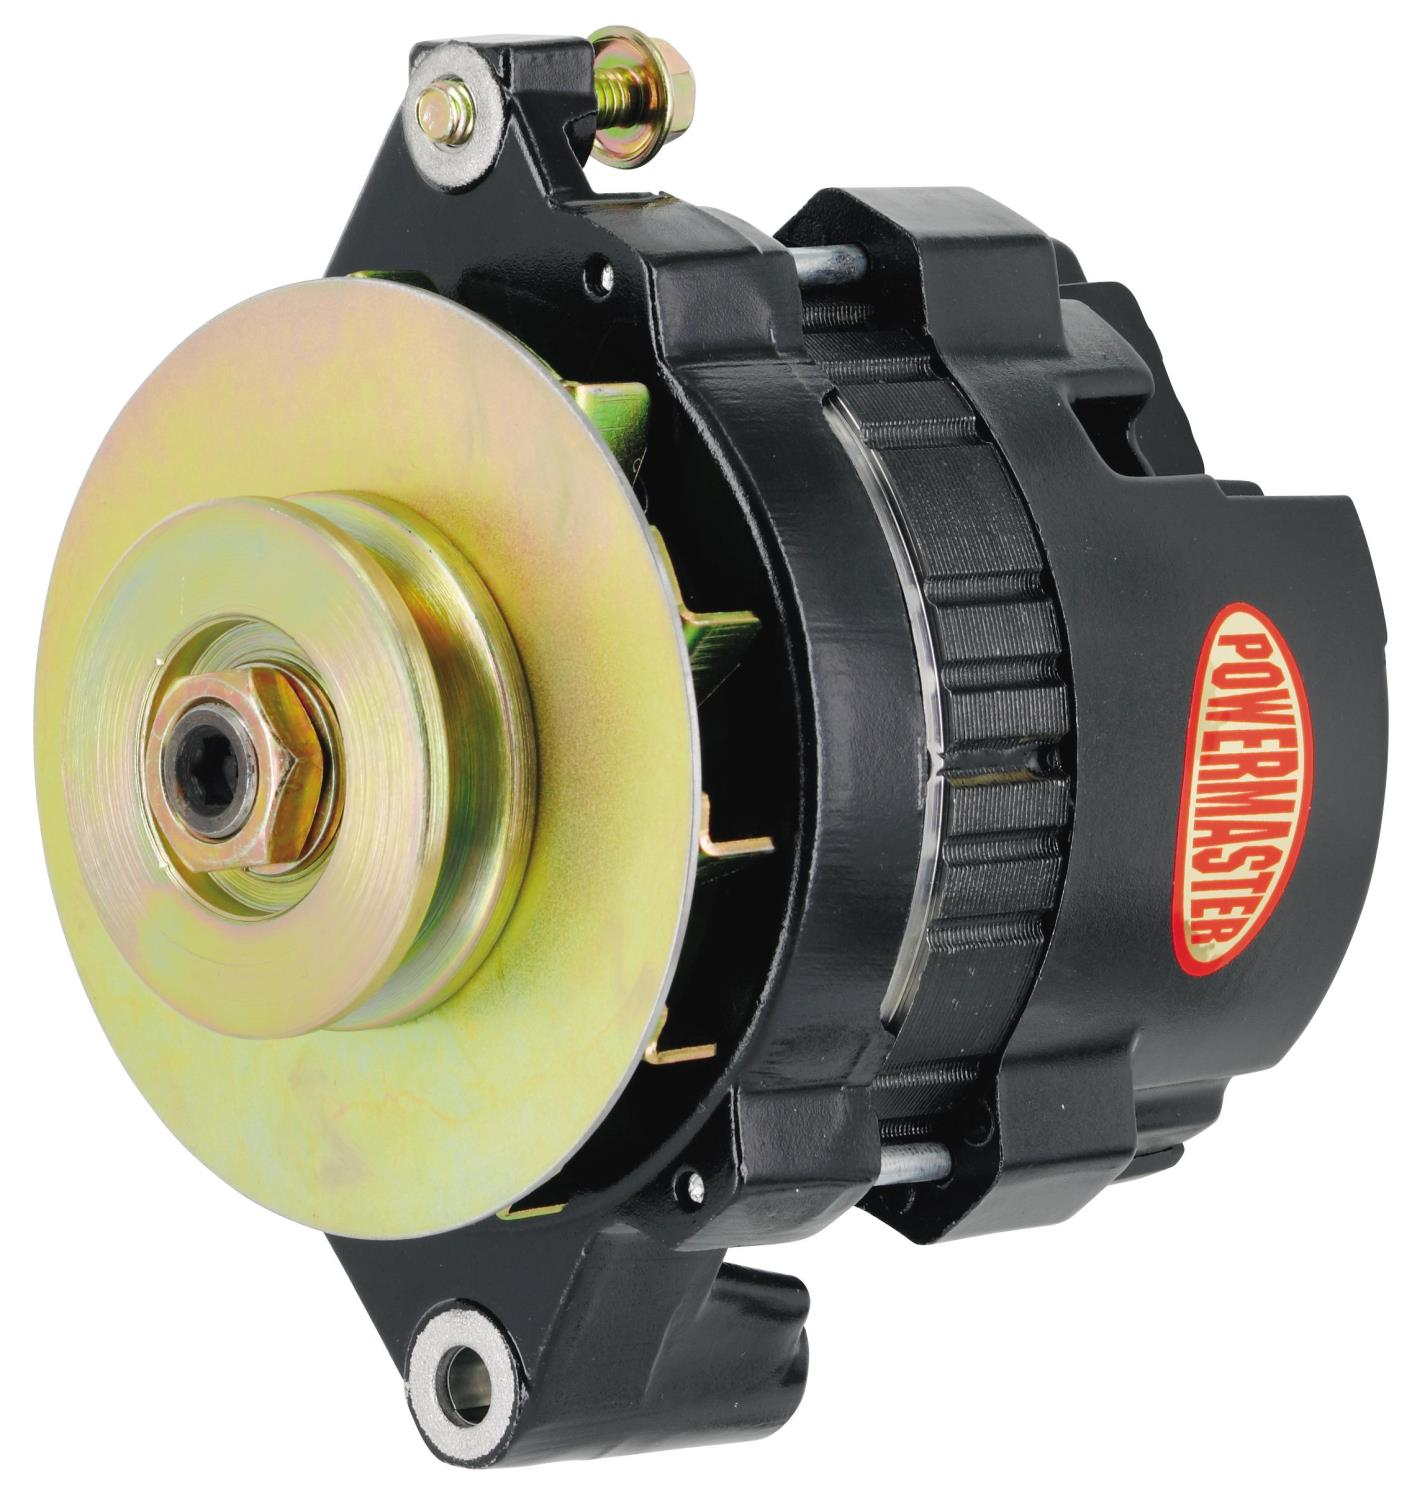 Powermaster 8462 - GM 5x5 Compact Race Alternators